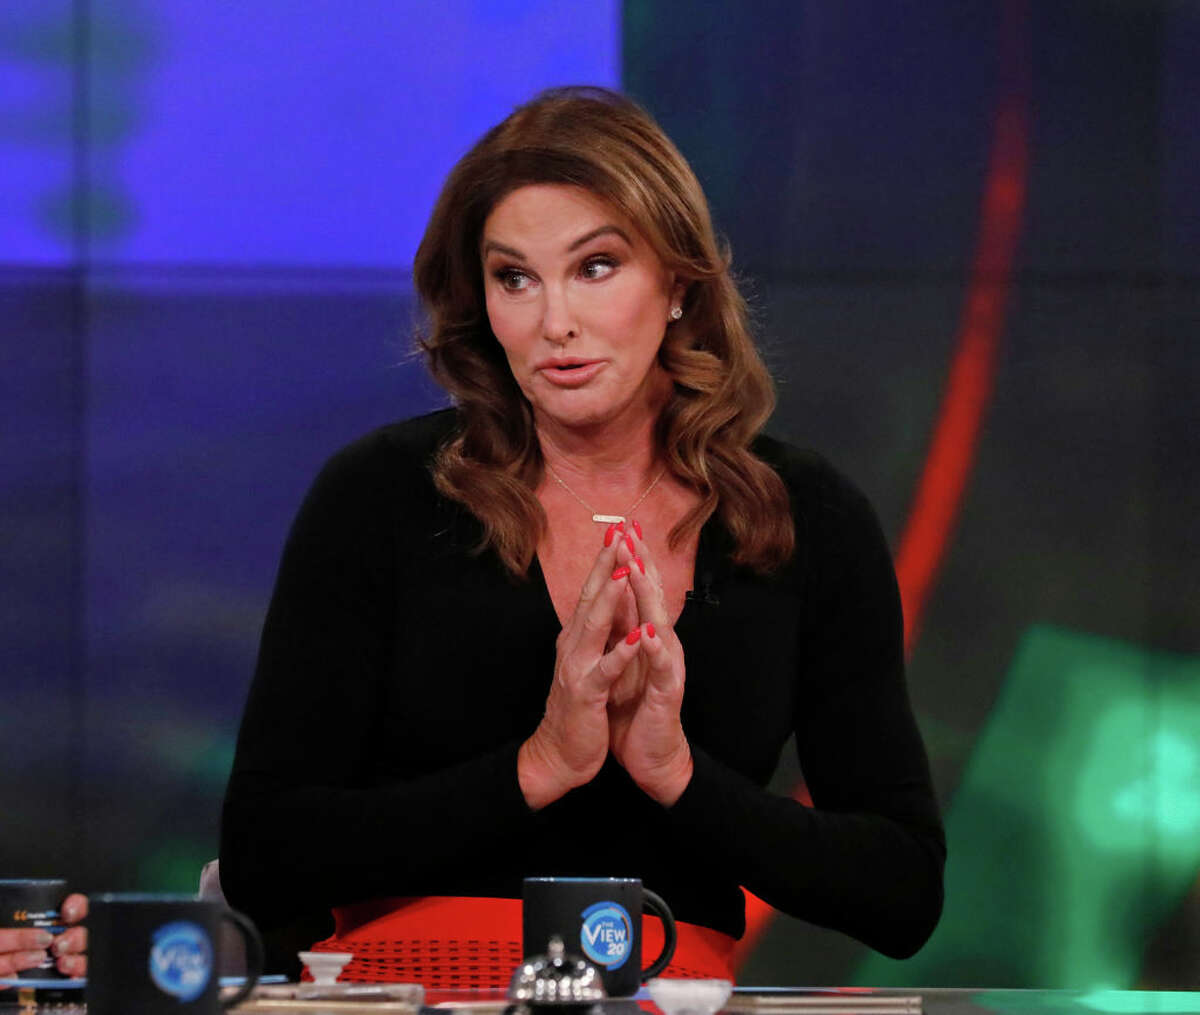 """Caitlyn Jenner in 2017 as a guest co-host on """"The View."""""""